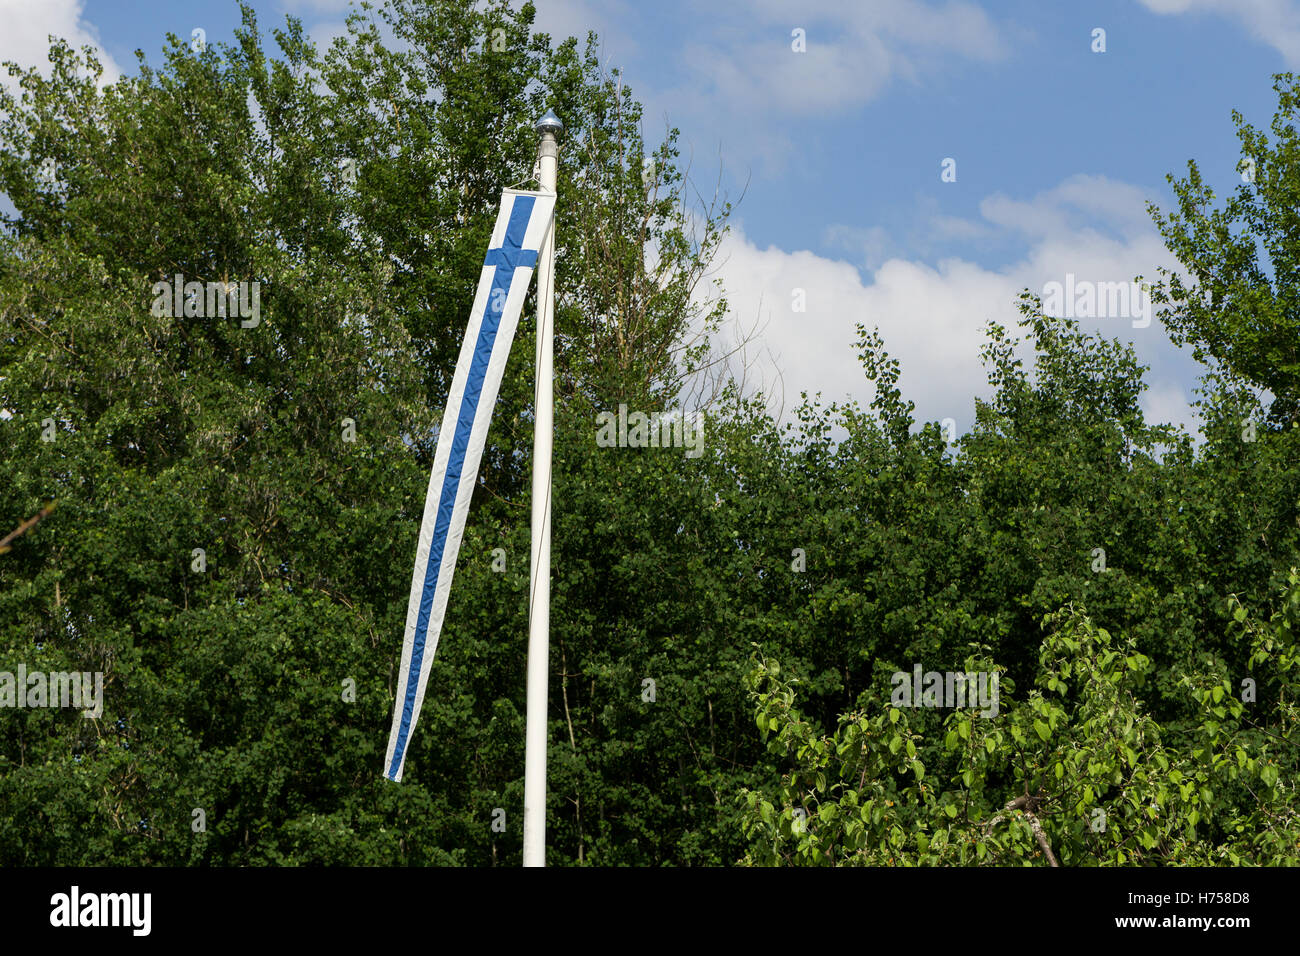 Finland's pennant raised up on a flagpole in the summer. - Stock Image